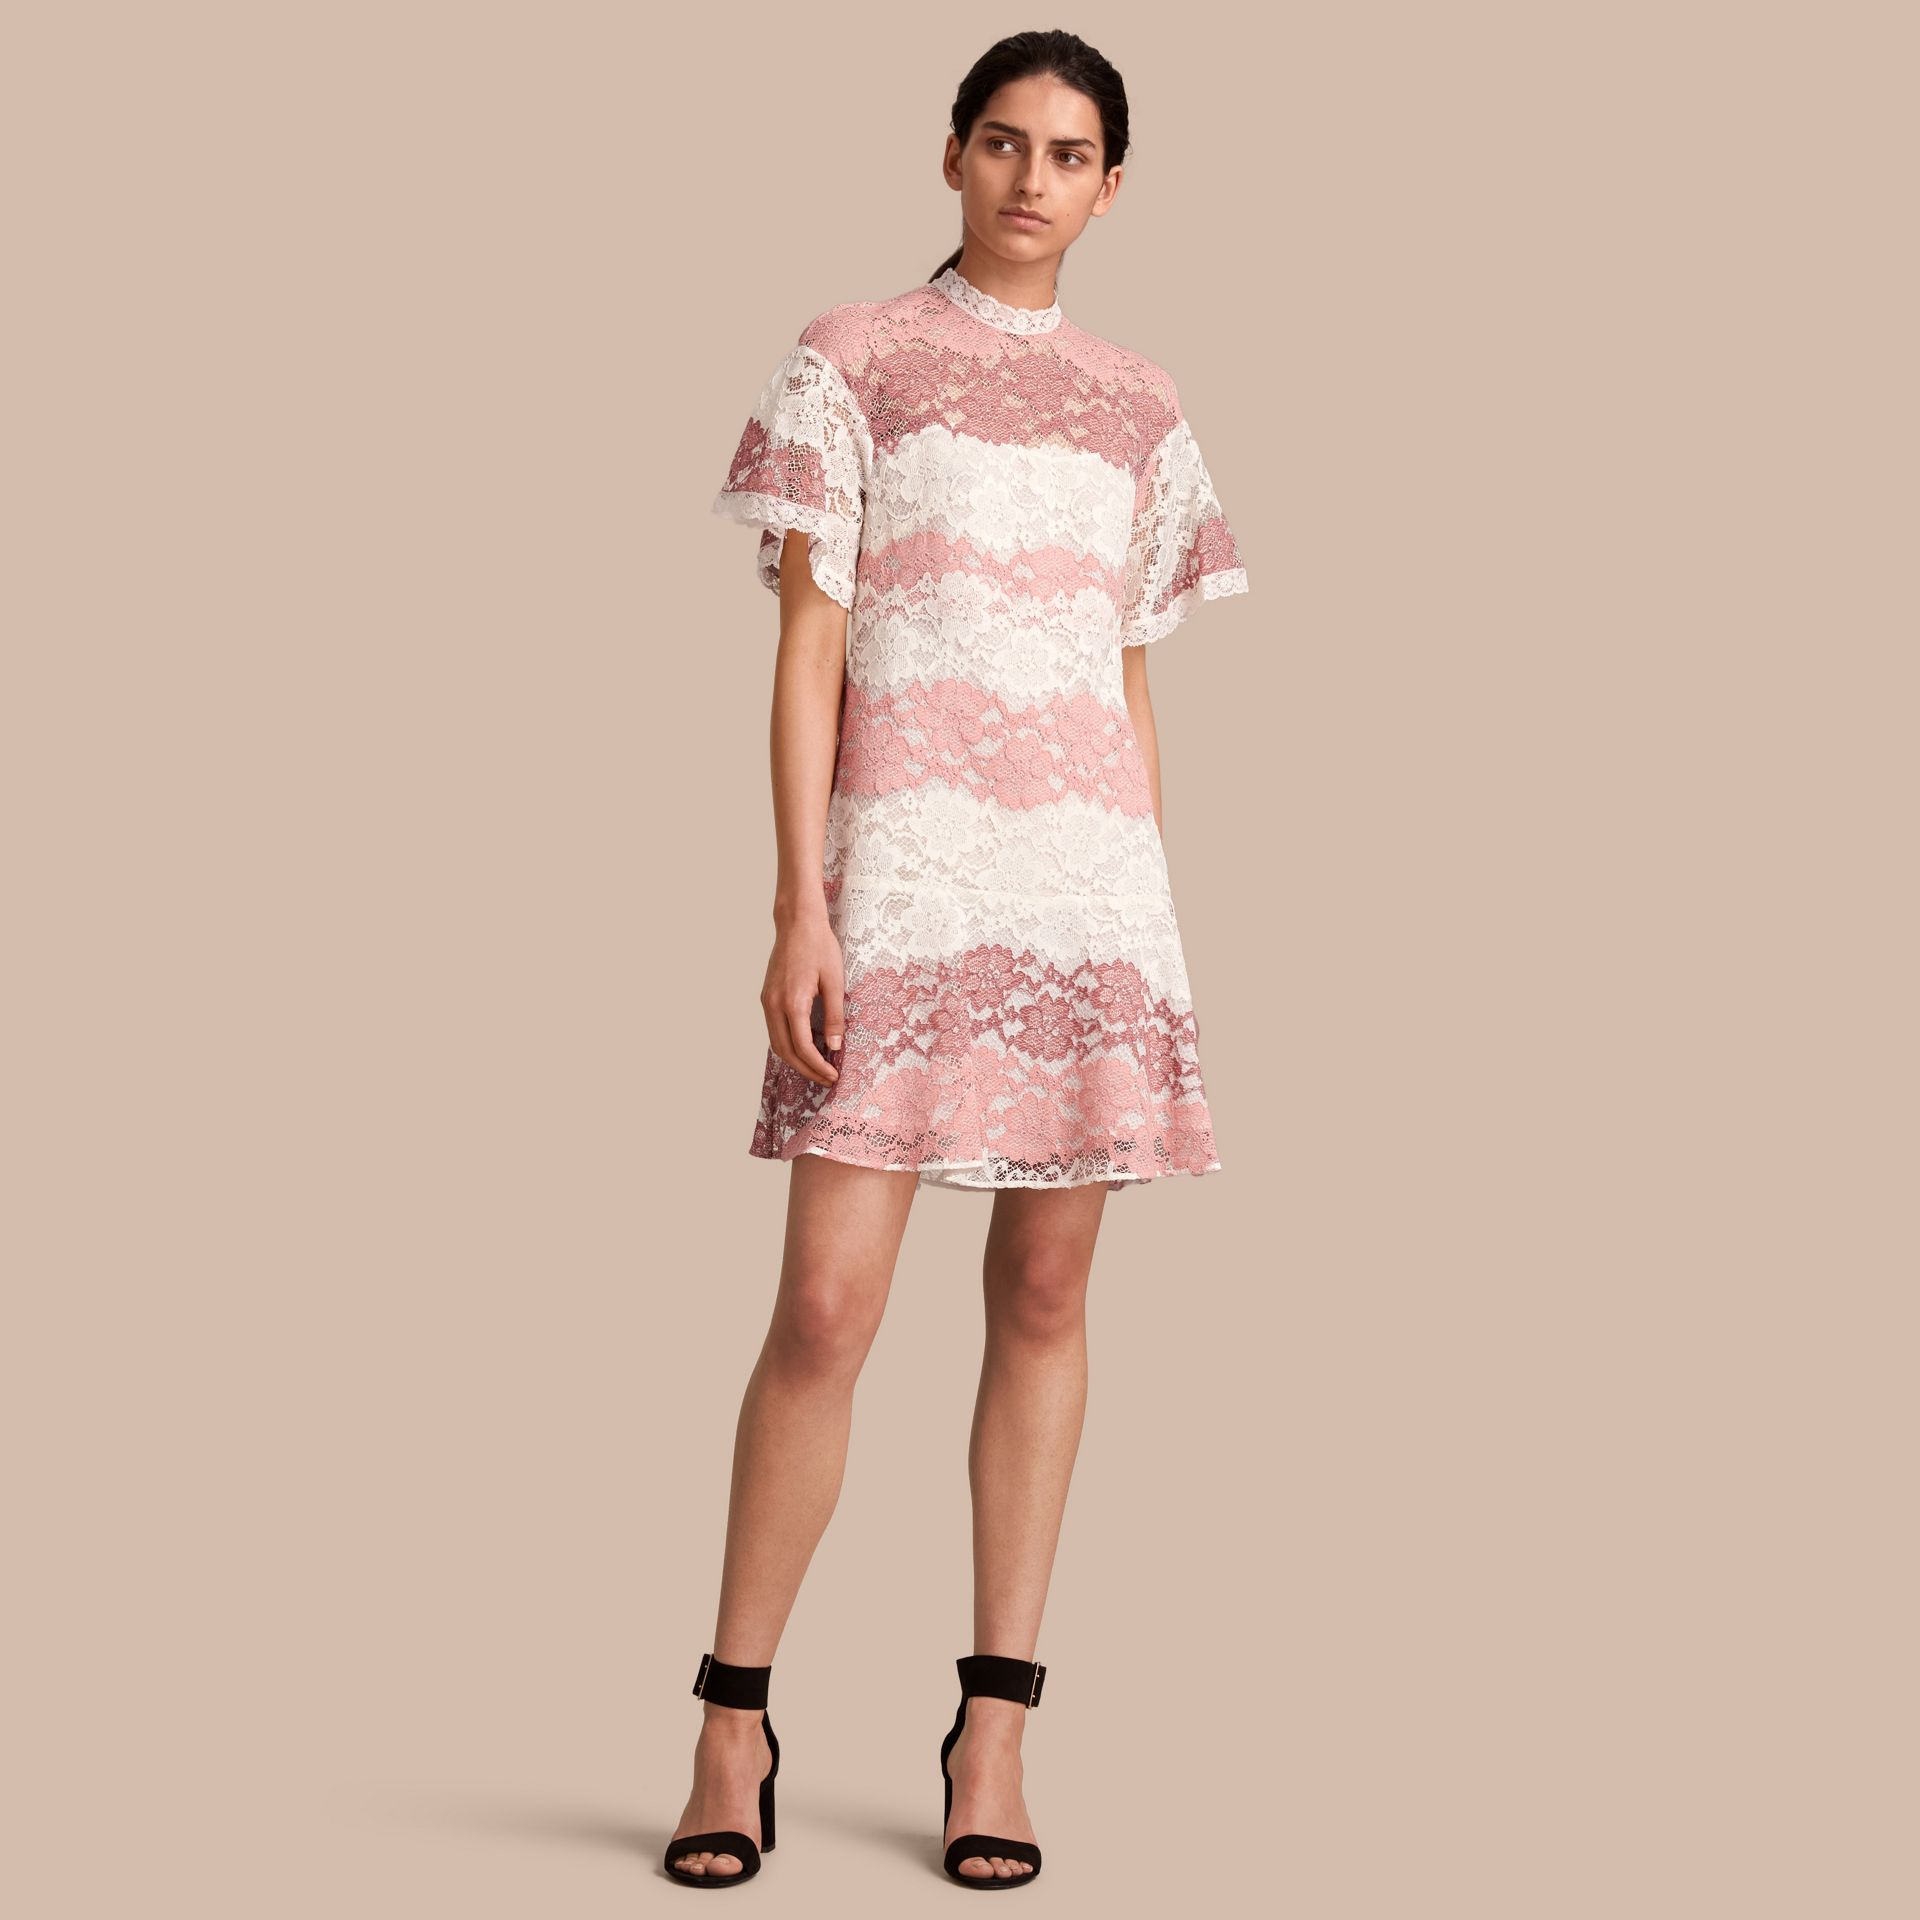 Floral Lace Dress with Flutter Sleeves in Dusty Pink - Women | Burberry - gallery image 1